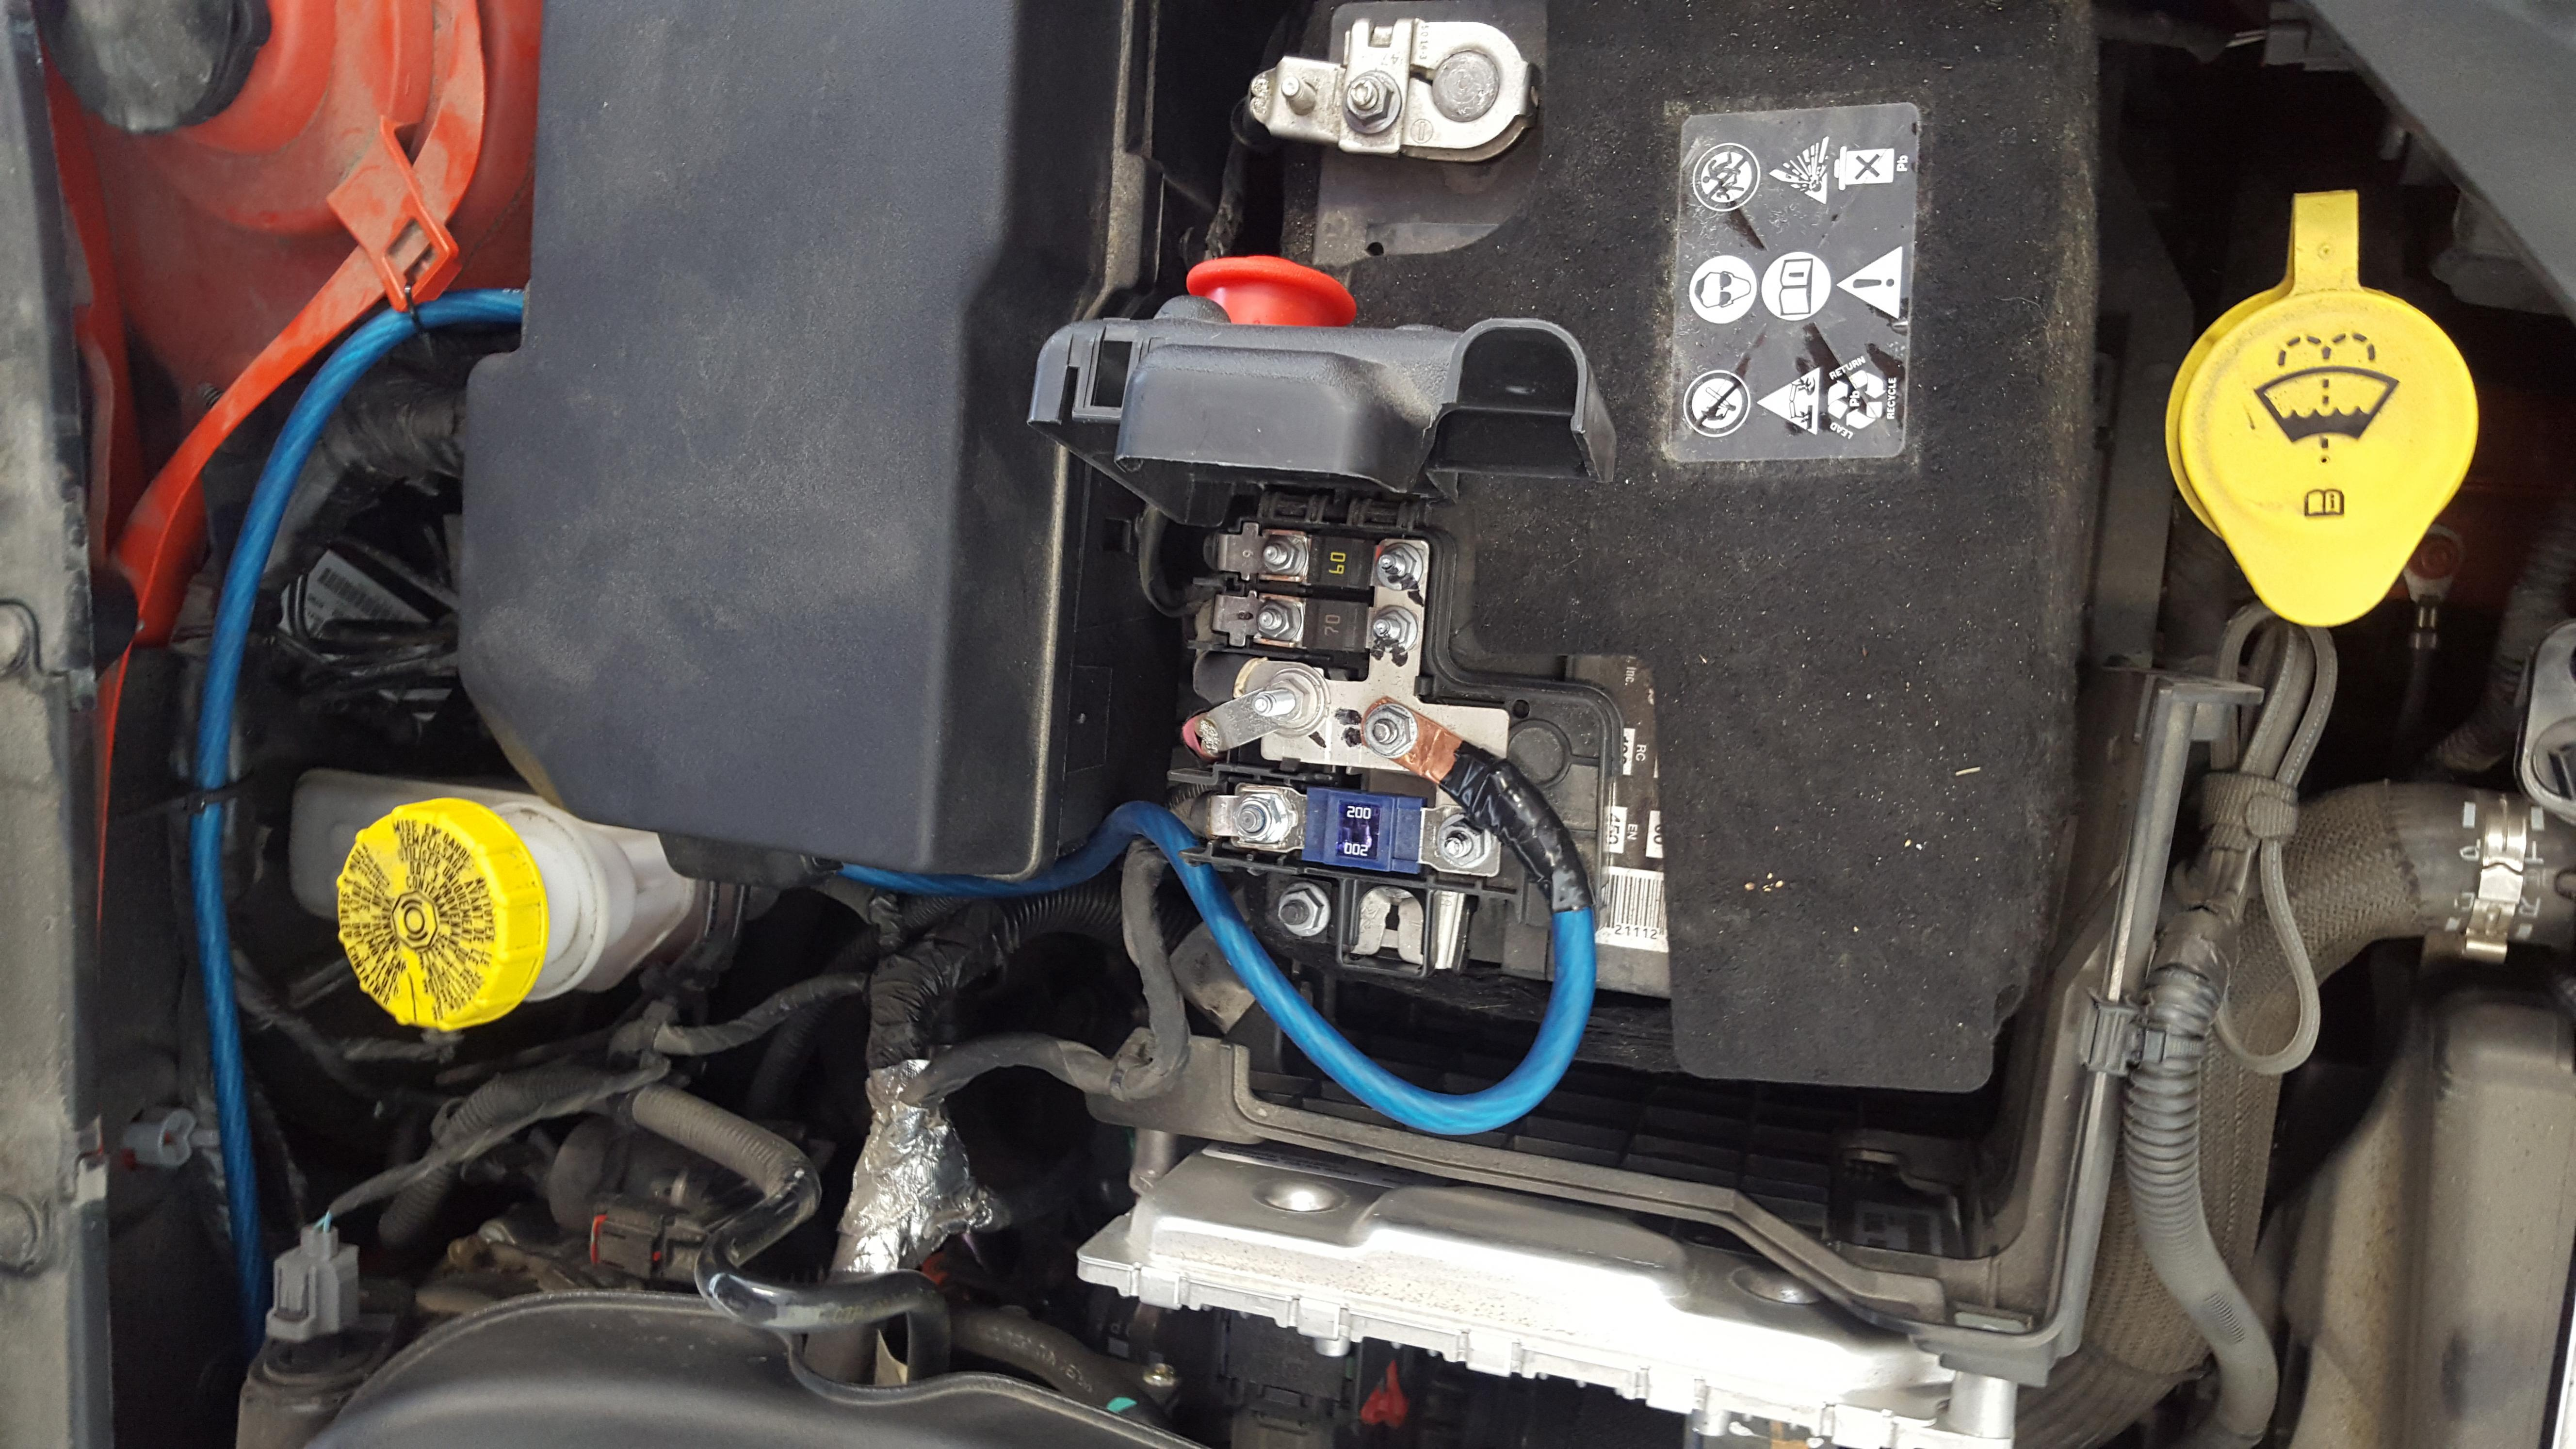 2015 Dodge Dart Battery Diagram - Circuit Connection Diagram • on 2013 jeep wrangler unlimited wiring diagram, 2013 mini cooper wiring diagram, 2013 dodge dart stereo upgrade, 2013 cadillac srx wiring diagram, 1968 dodge dart wiring diagram, 2012 ford edge wiring diagram, 2013 chrysler 300 wiring diagram, 2013 dodge dart radiator, 2011 dodge ram 1500 wiring diagram, 2013 mazda 3 wiring diagram, 2009 dodge ram 1500 wiring diagram, 2013 toyota avalon wiring diagram, 2013 dodge dart door panel removal, 2011 dodge nitro wiring diagram, 2013 suzuki sx4 wiring diagram, 2010 dodge ram 1500 wiring diagram, 2014 dodge dart wiring diagram, 2010 dodge ram 2500 wiring diagram, 2012 dodge avenger wiring diagram, 2012 chrysler 200 wiring diagram,